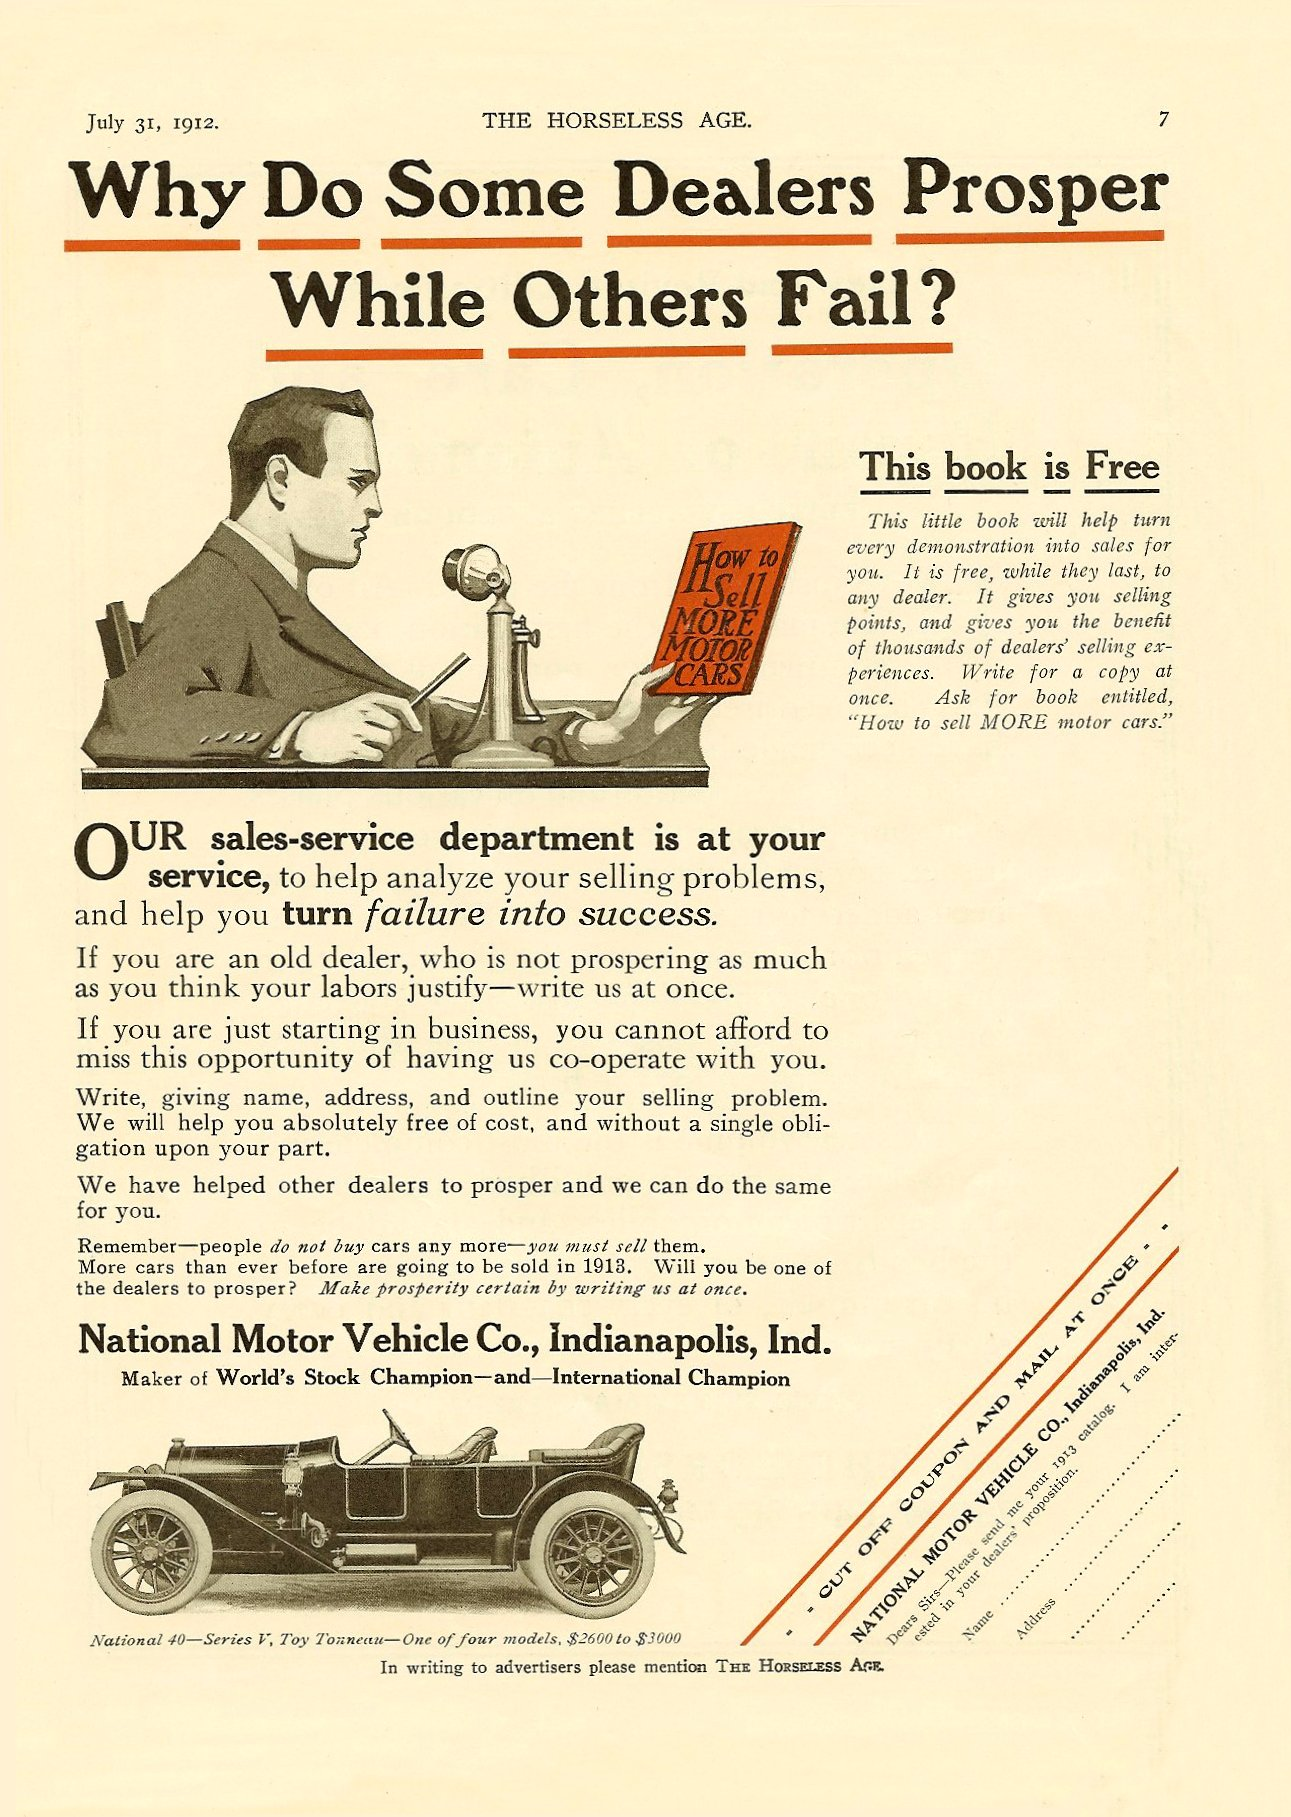 1912 7 31 NATIONAL Why Do Some Dealers Proper While Others Fail? THE HORSELESS AGE Vol. 30, No. 2 July 31, 1912 9″x12″ page 7